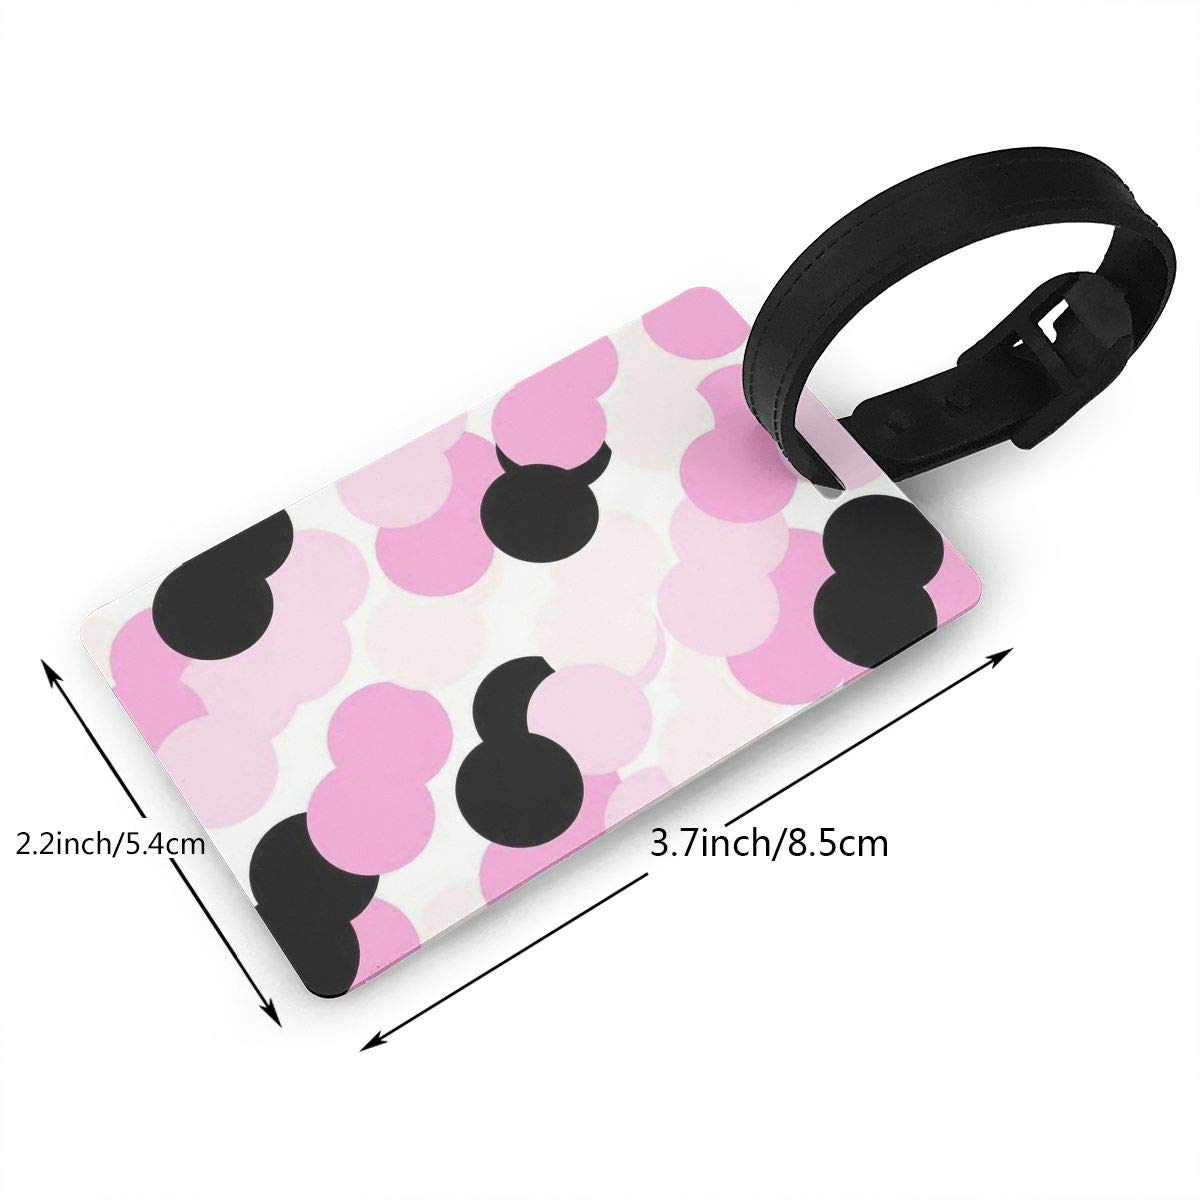 2 Pack Luggage Tags Colorful Polka Dot Cruise Luggage Tag For Travel Bag Suitcase Accessories